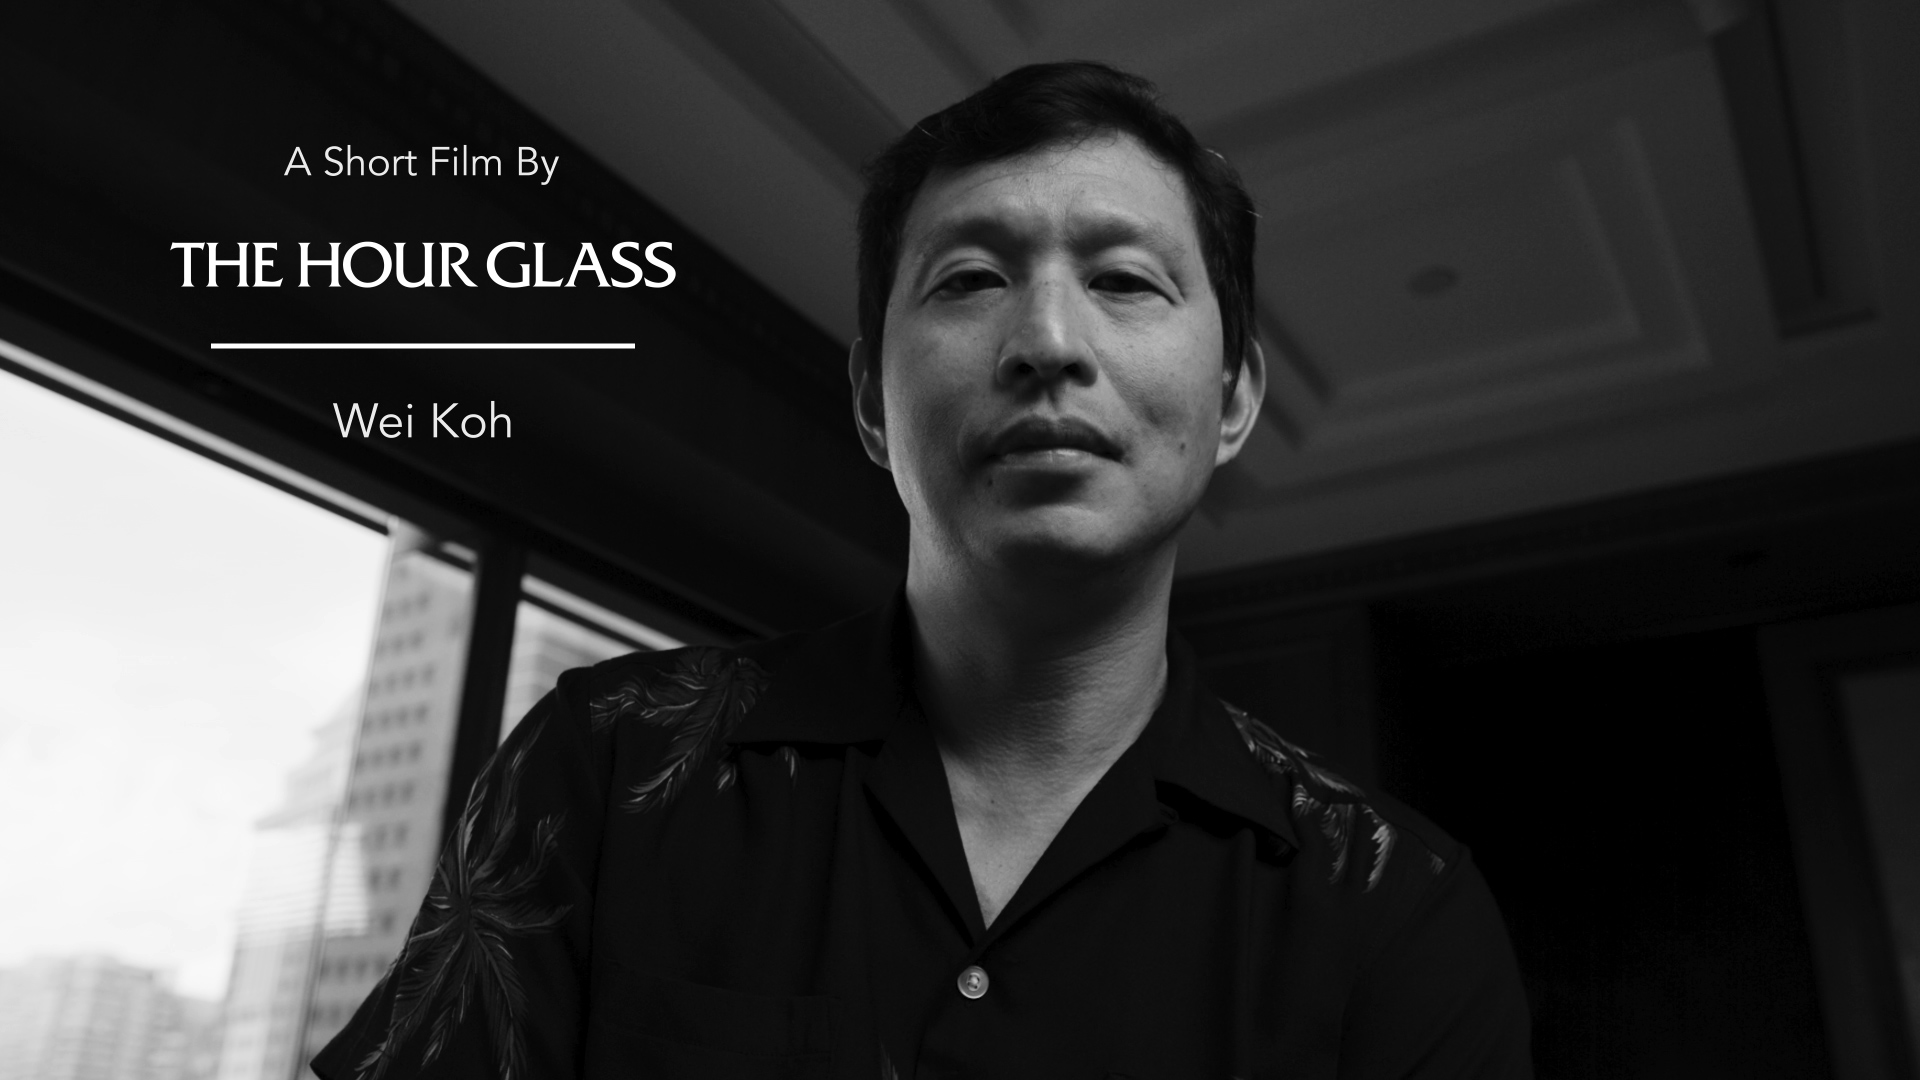 Wassup Wei Koh | A Short Film By The Hour Glass   The Hour Glass   Australia